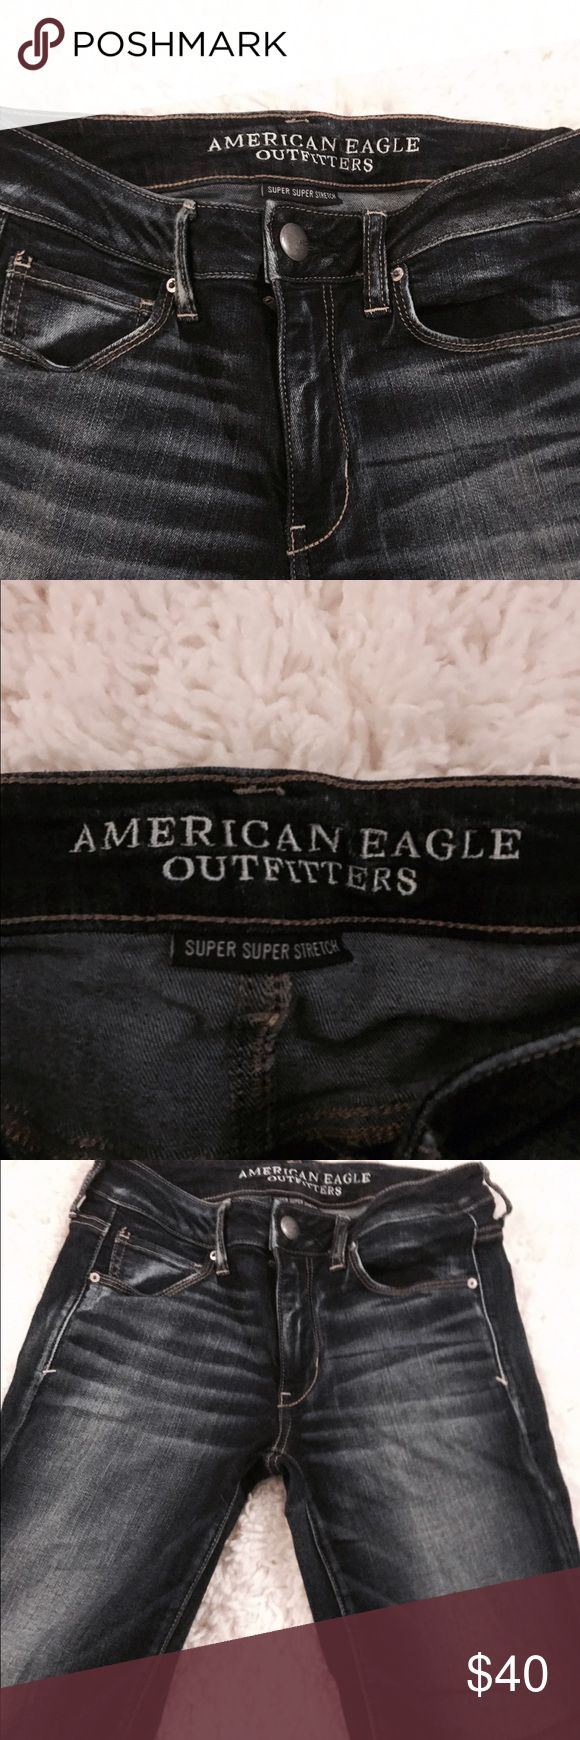 • American eagle jeans These jeans have been worn for 8 hours if that • worn once for an interview • I don't trade • do not low ball me American Eagle Outfitters Pants Skinny